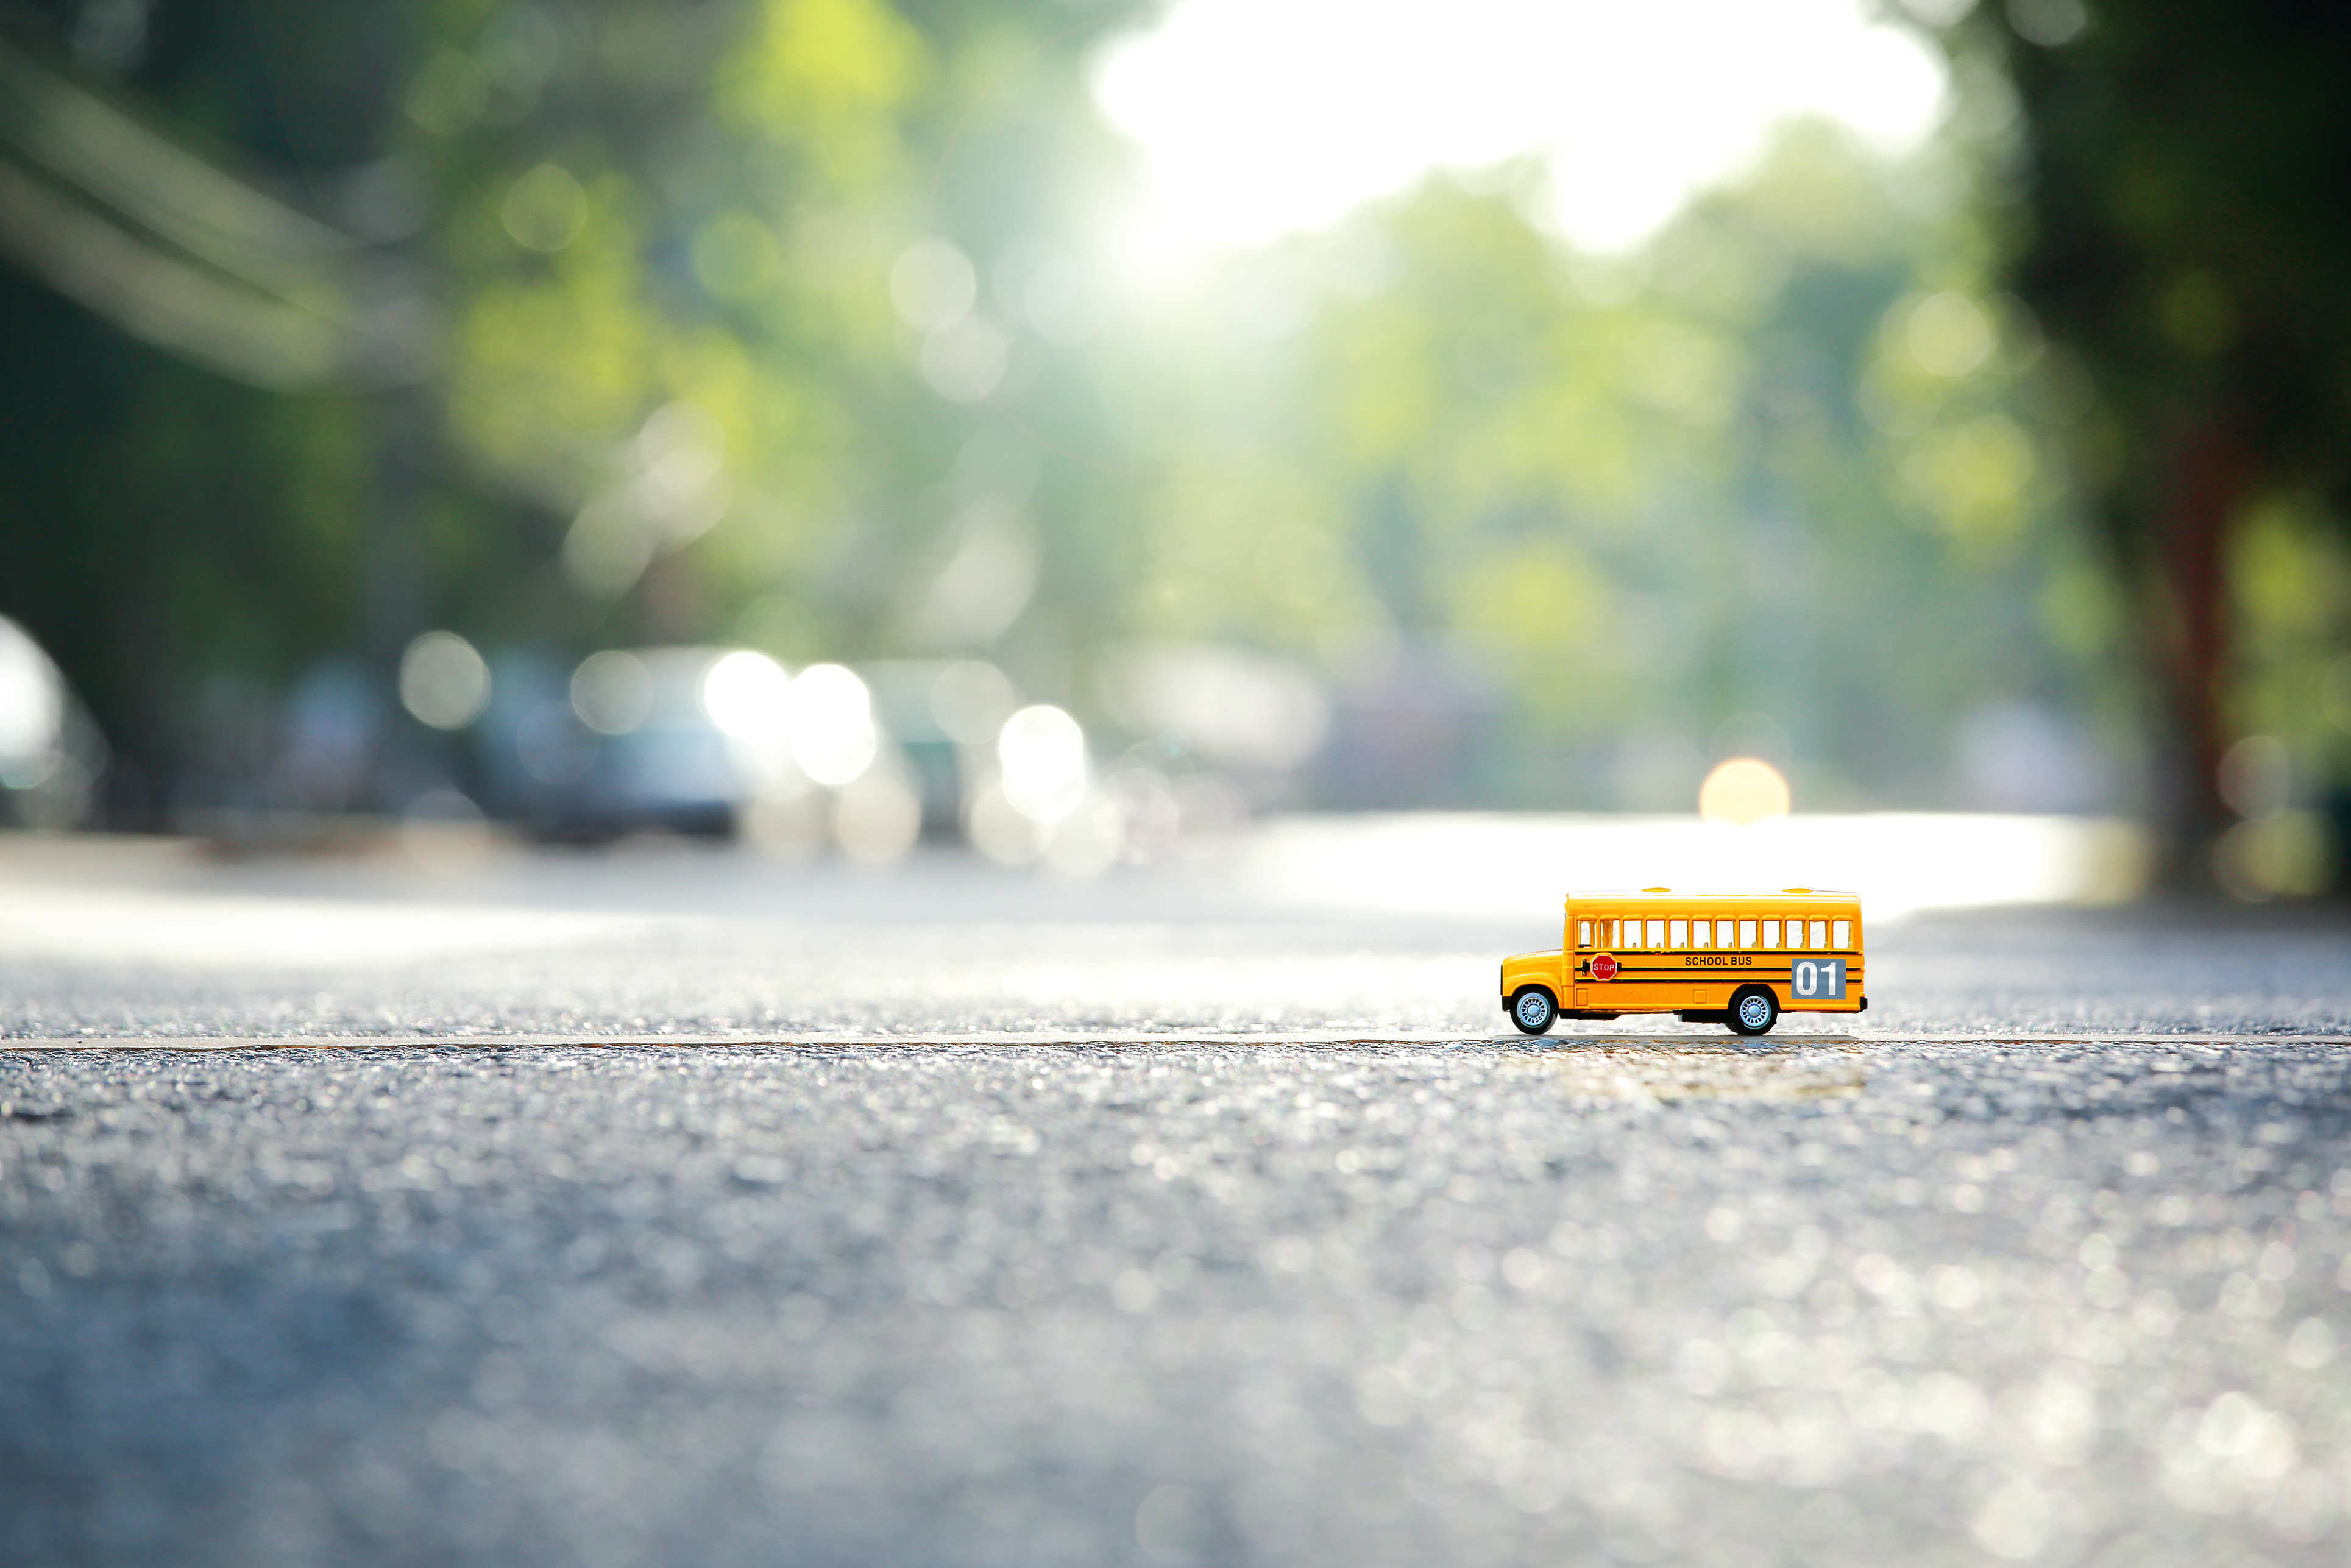 Yellow school bus toy model the road crossing.Shallow depth of field composition and afternoon scene.